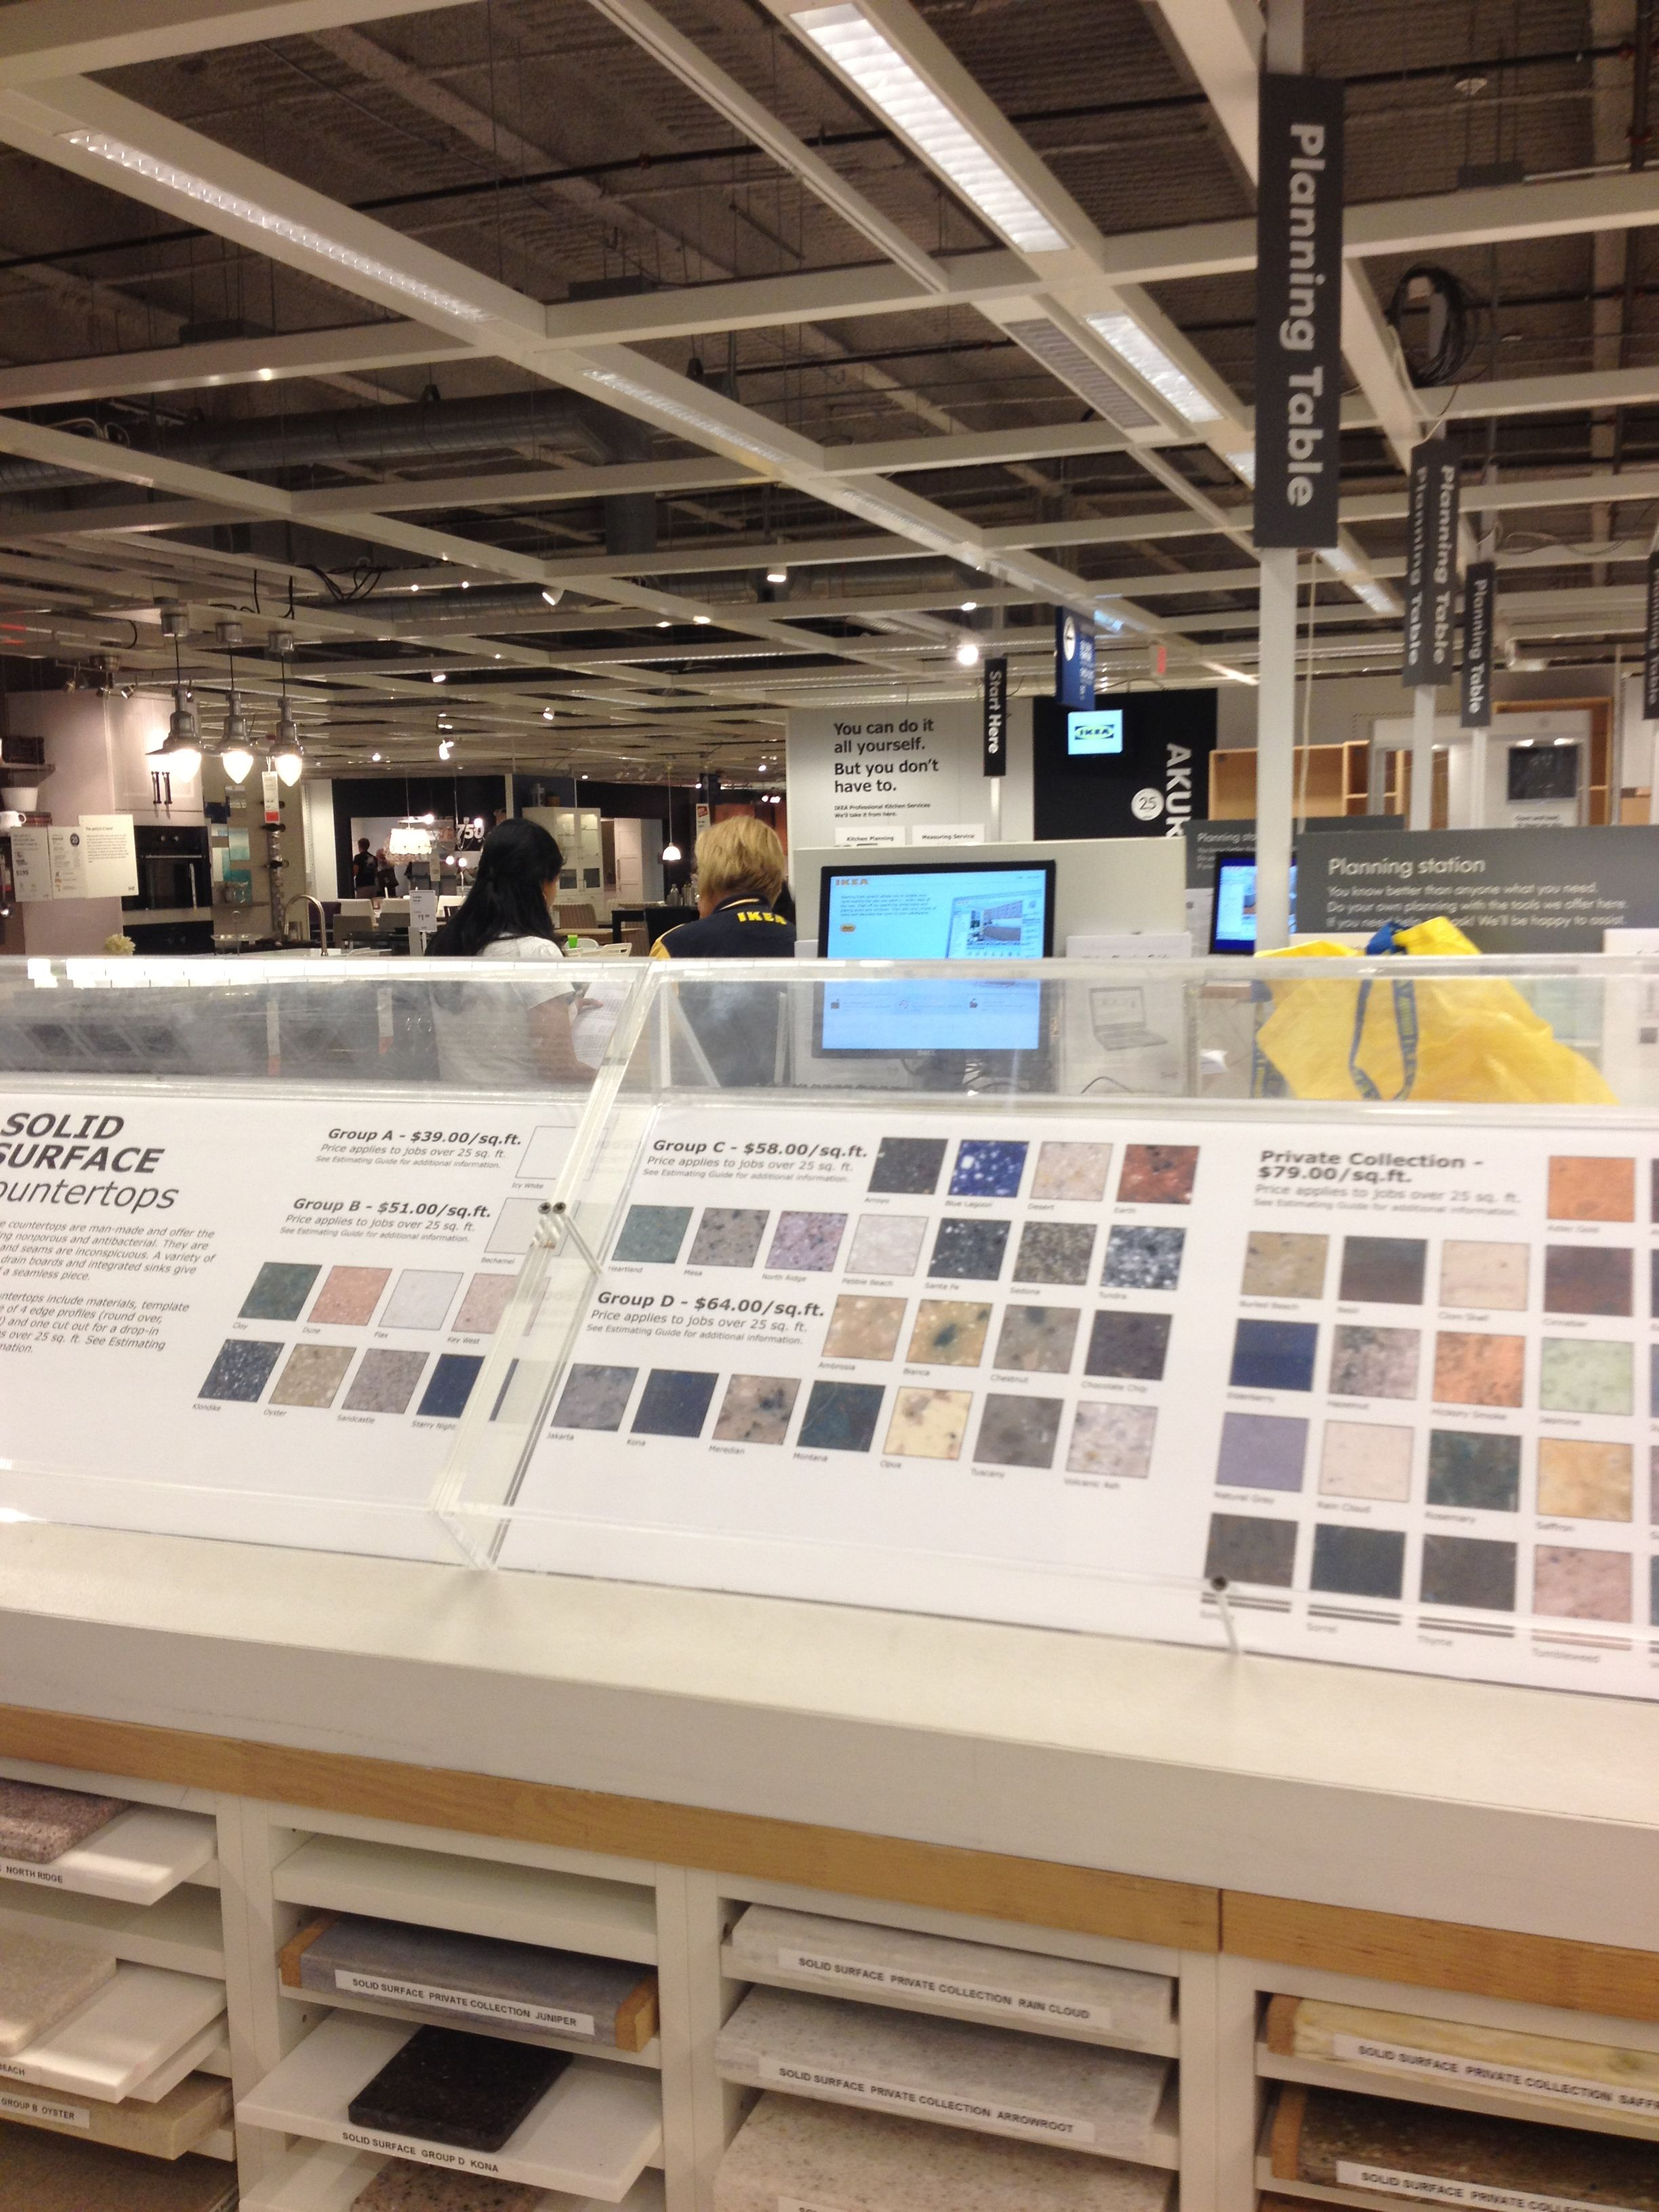 More quality time in the Ikea kitchen section.